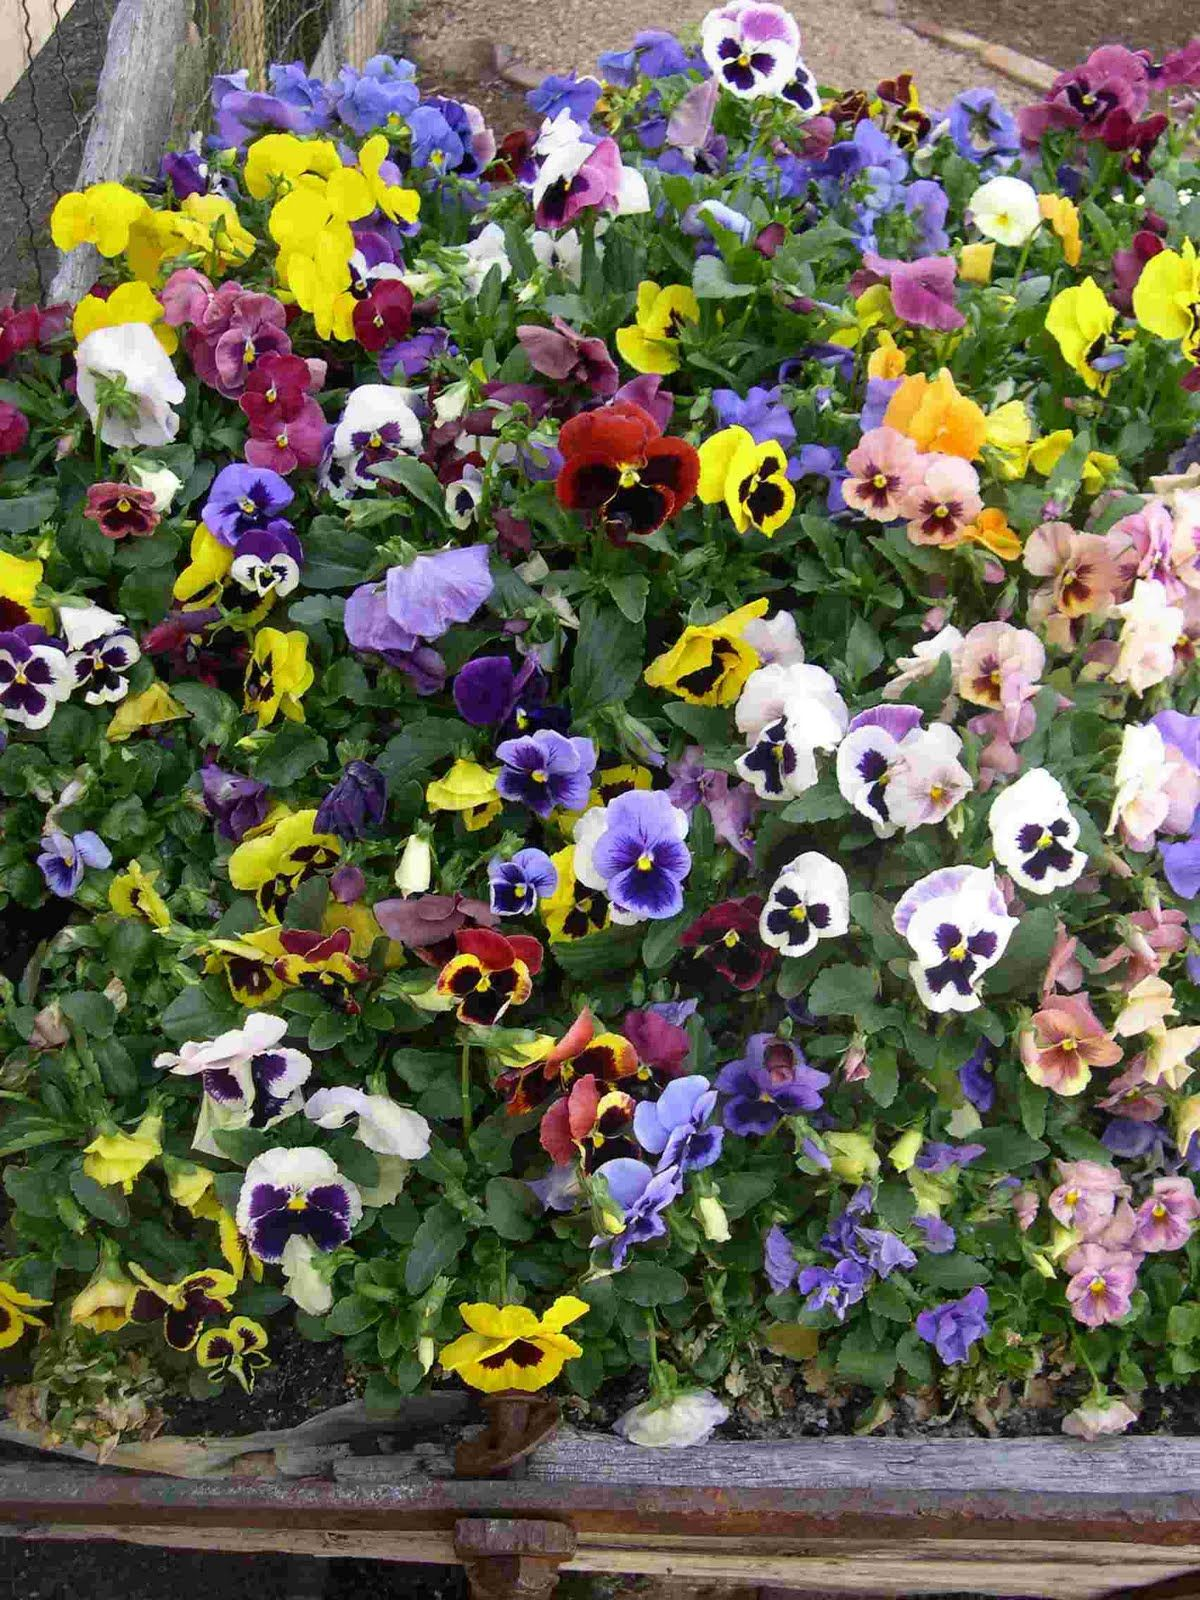 icicle pansies - plant in September and enjoy now.  Enjoy again next spring.